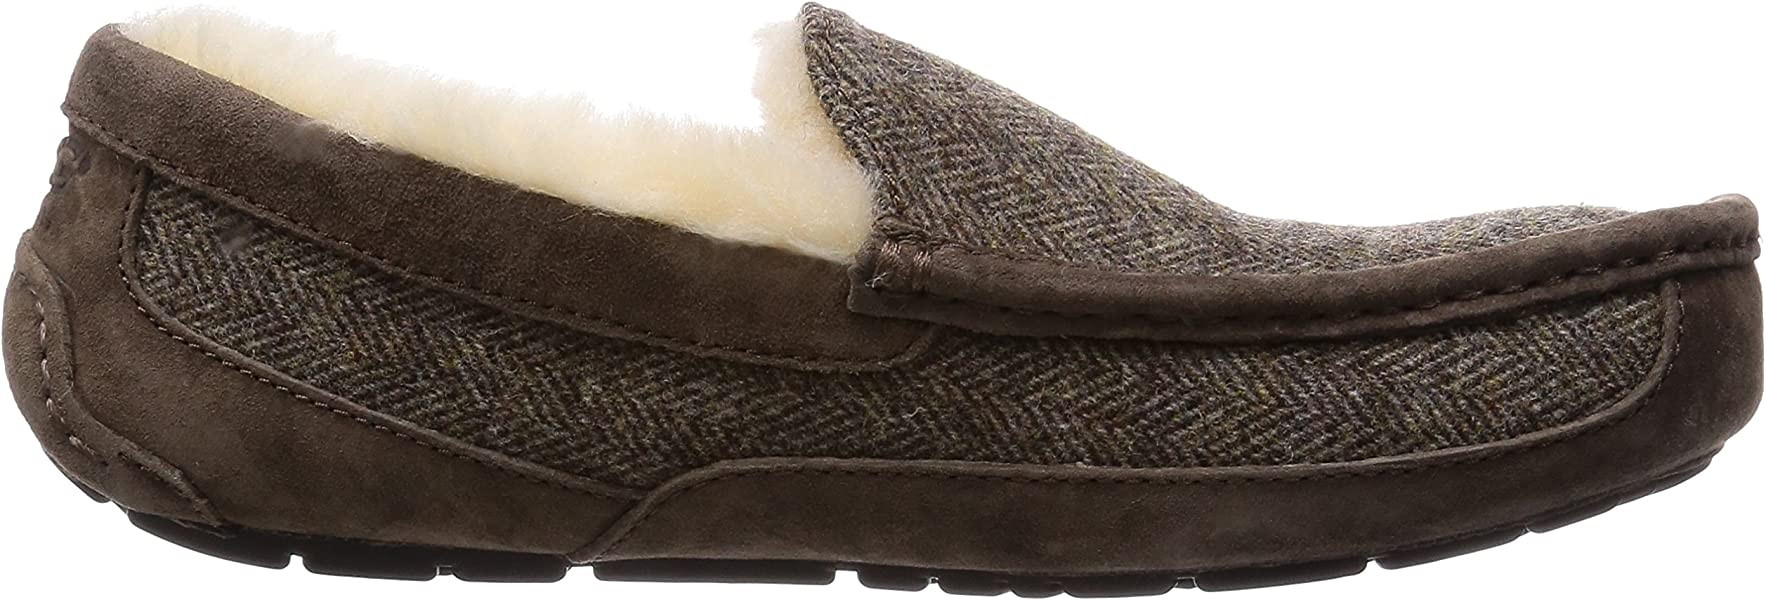 cb3ea864895 Australia Mens Ascot Wool Slipper